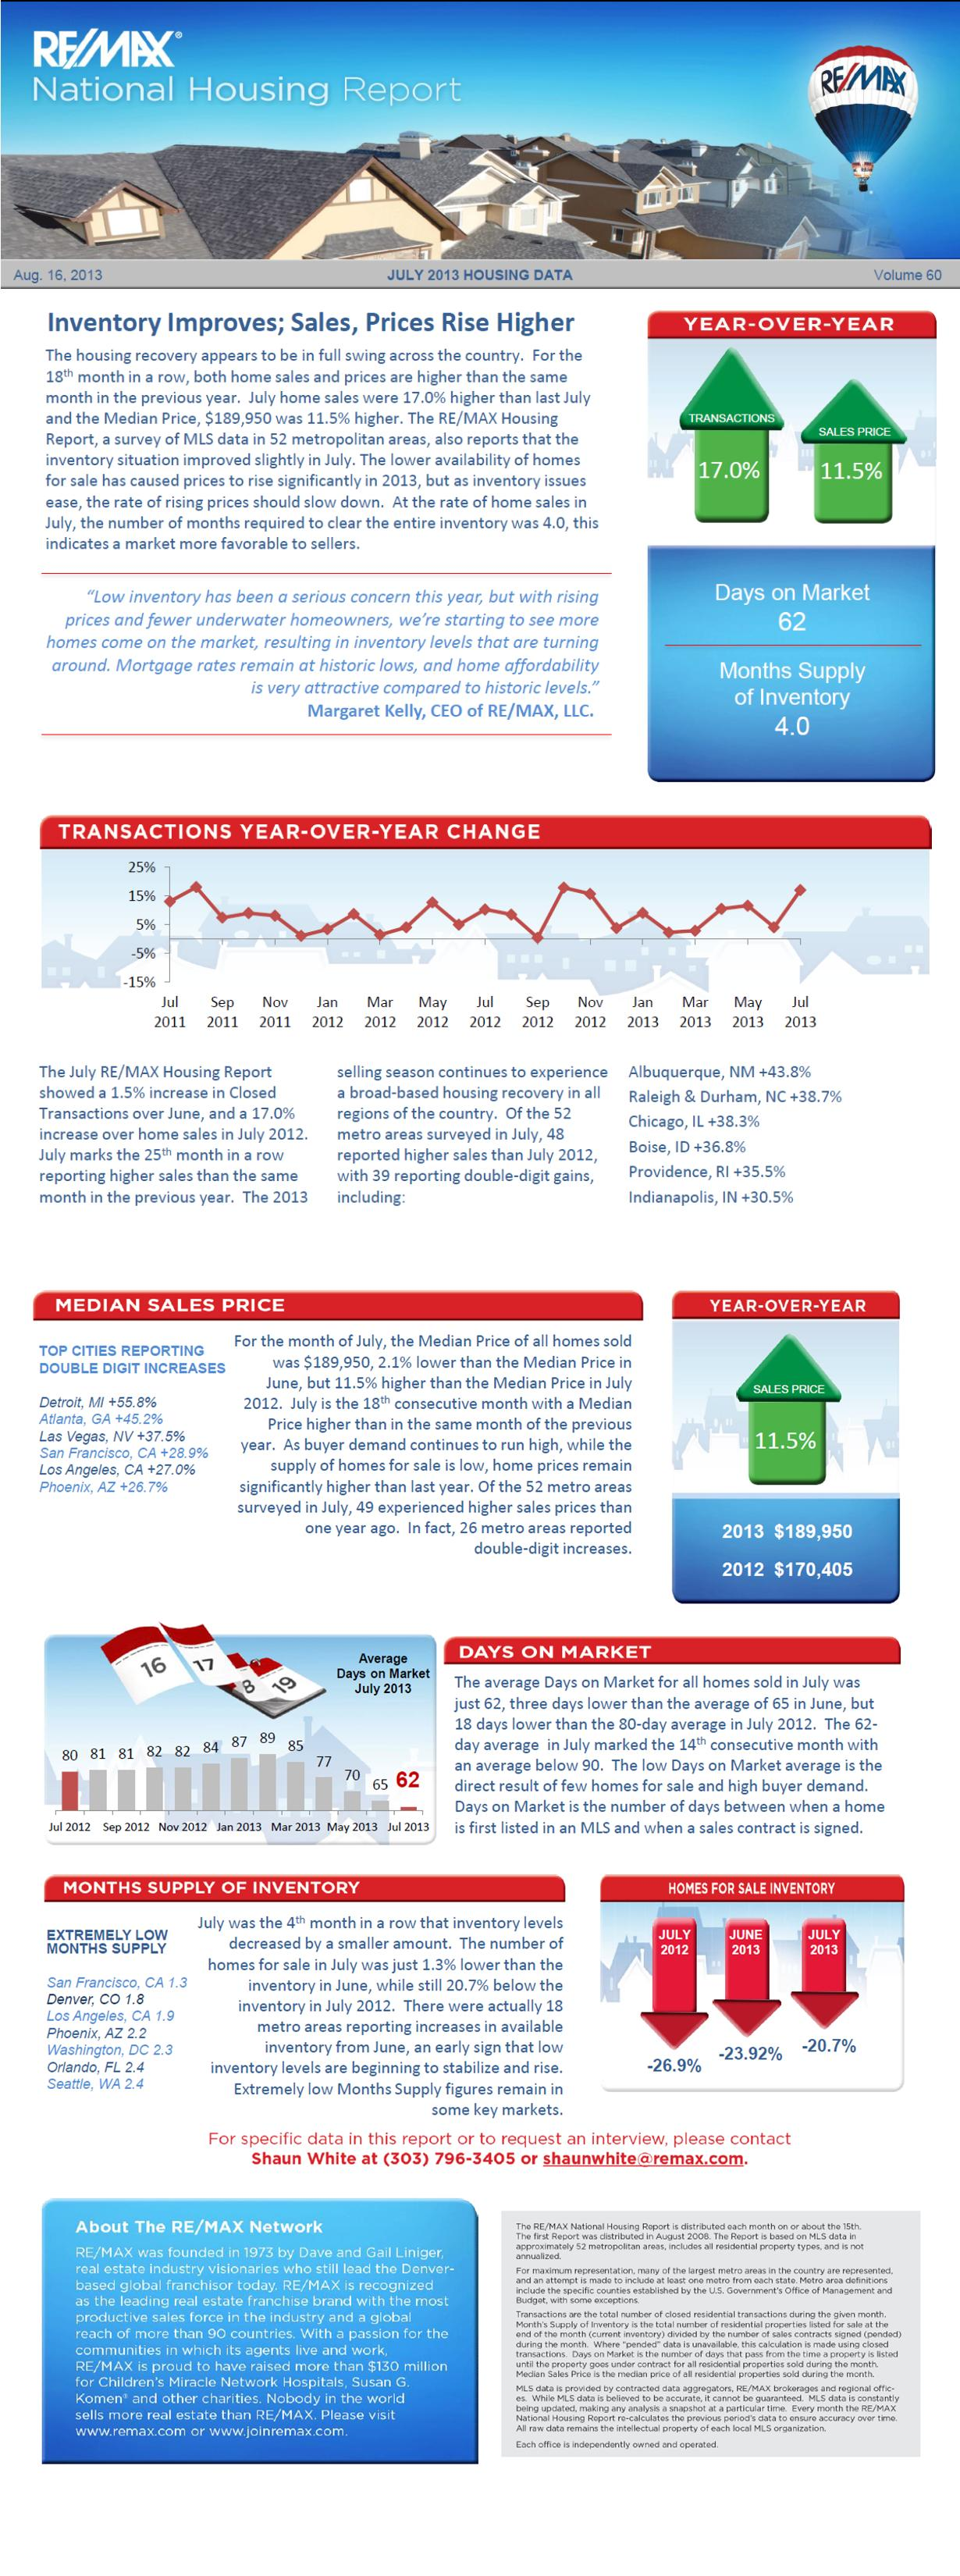 National Housing Report 2013